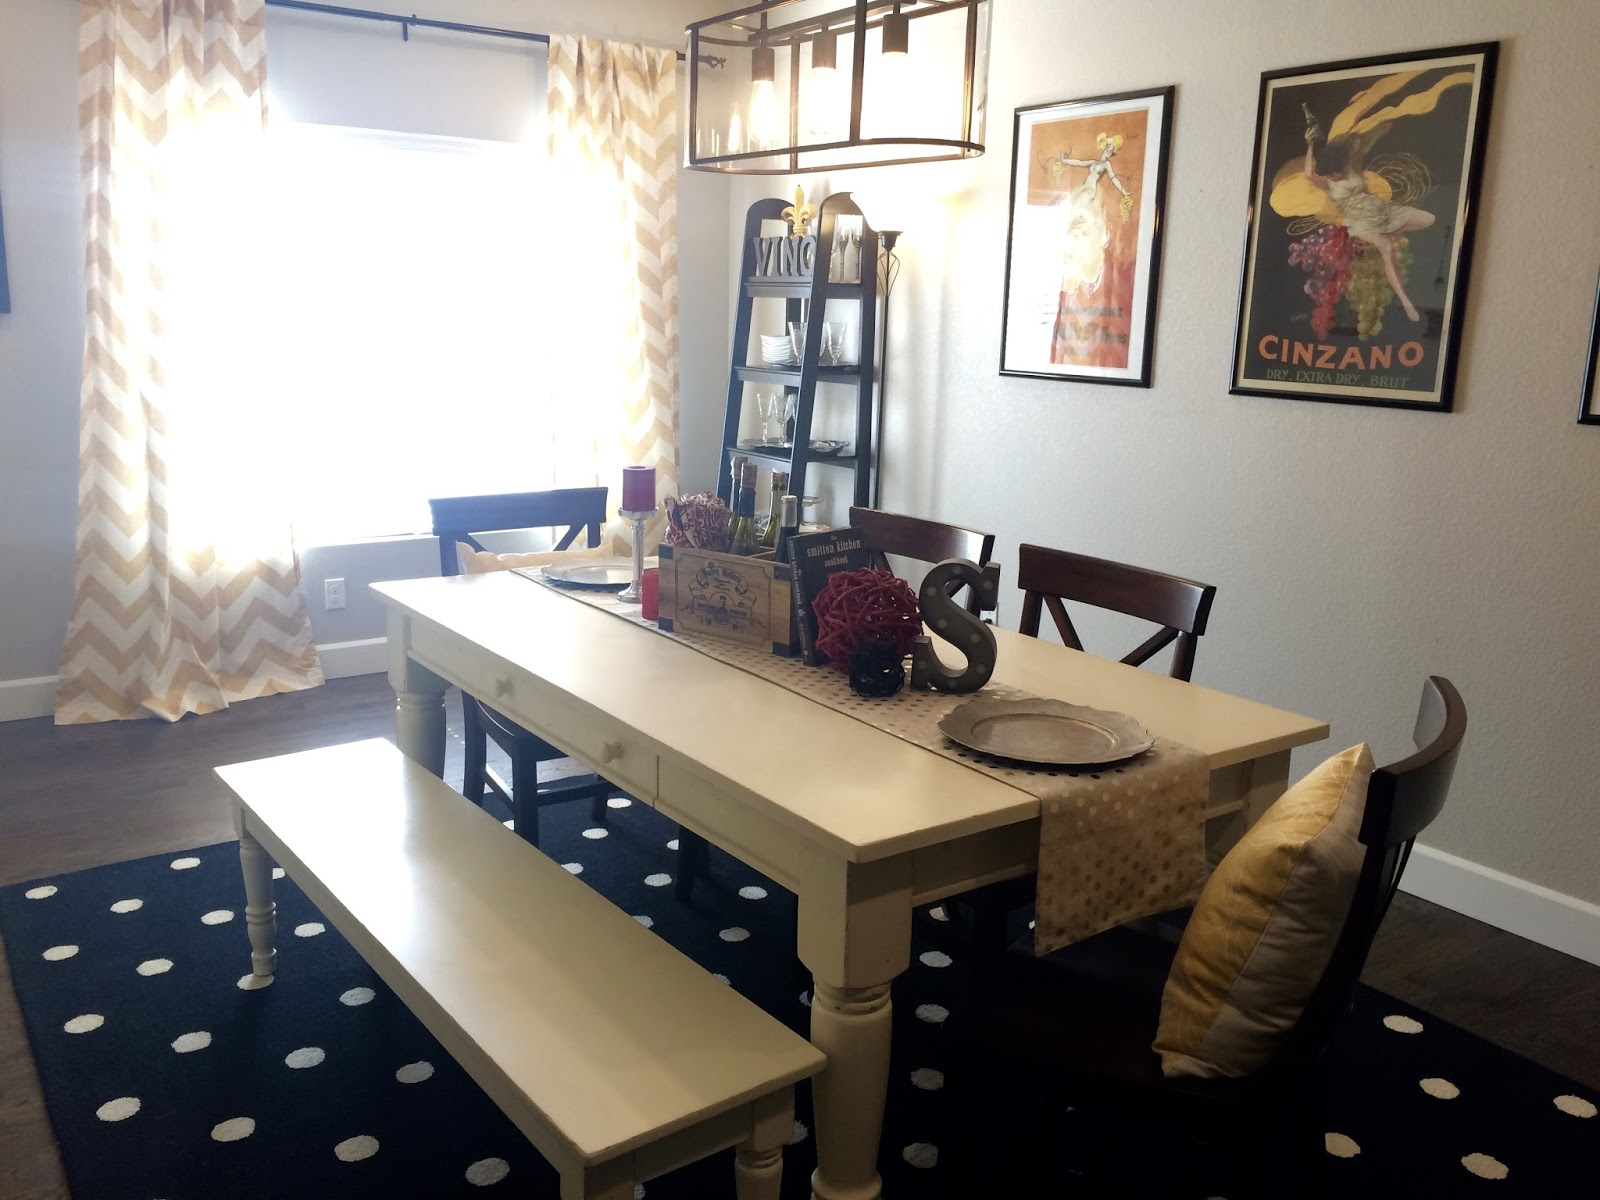 Mixing dining room chairs